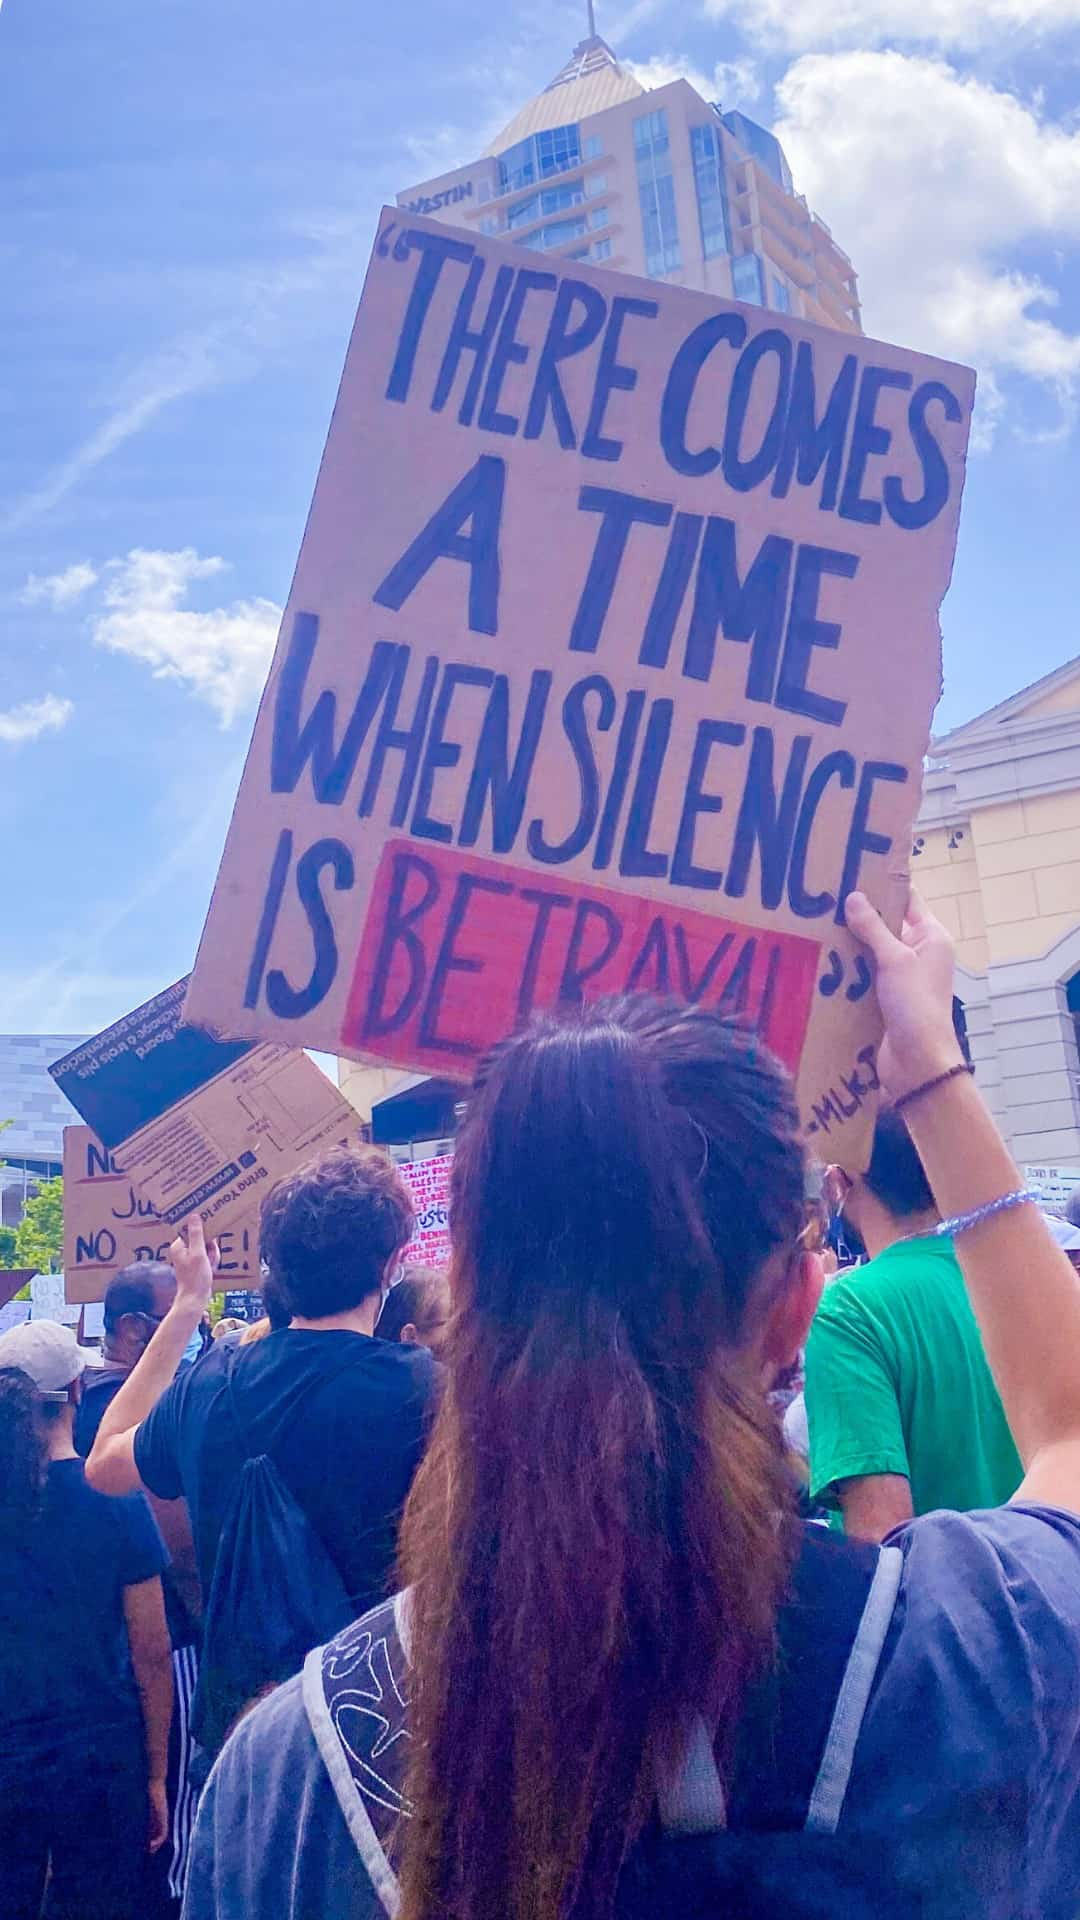 There becomes a time when silence equals betrayal protest sign